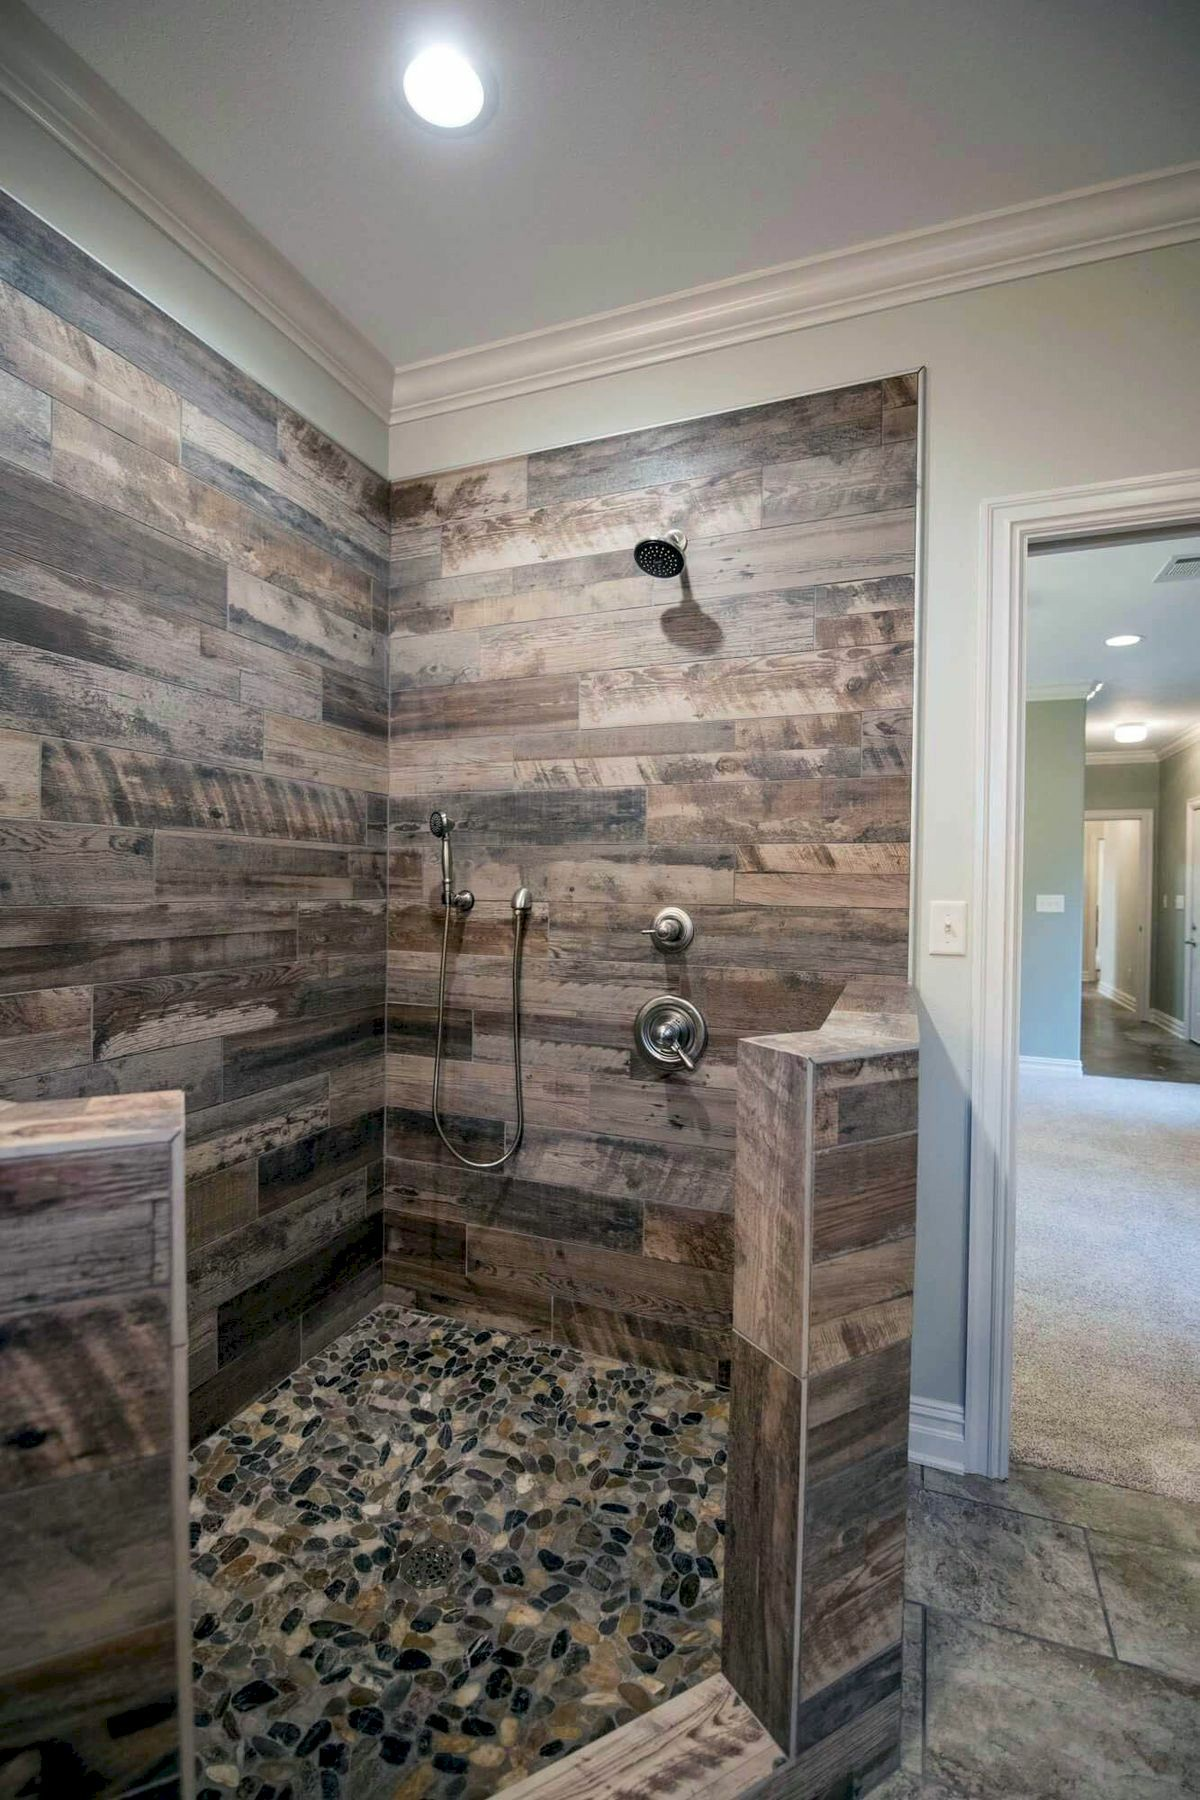 50 Cool Shower Design Ideas For Your Bathroom Rustic Master Bathroom Rustic Bathroom Shower Rustic Bathrooms